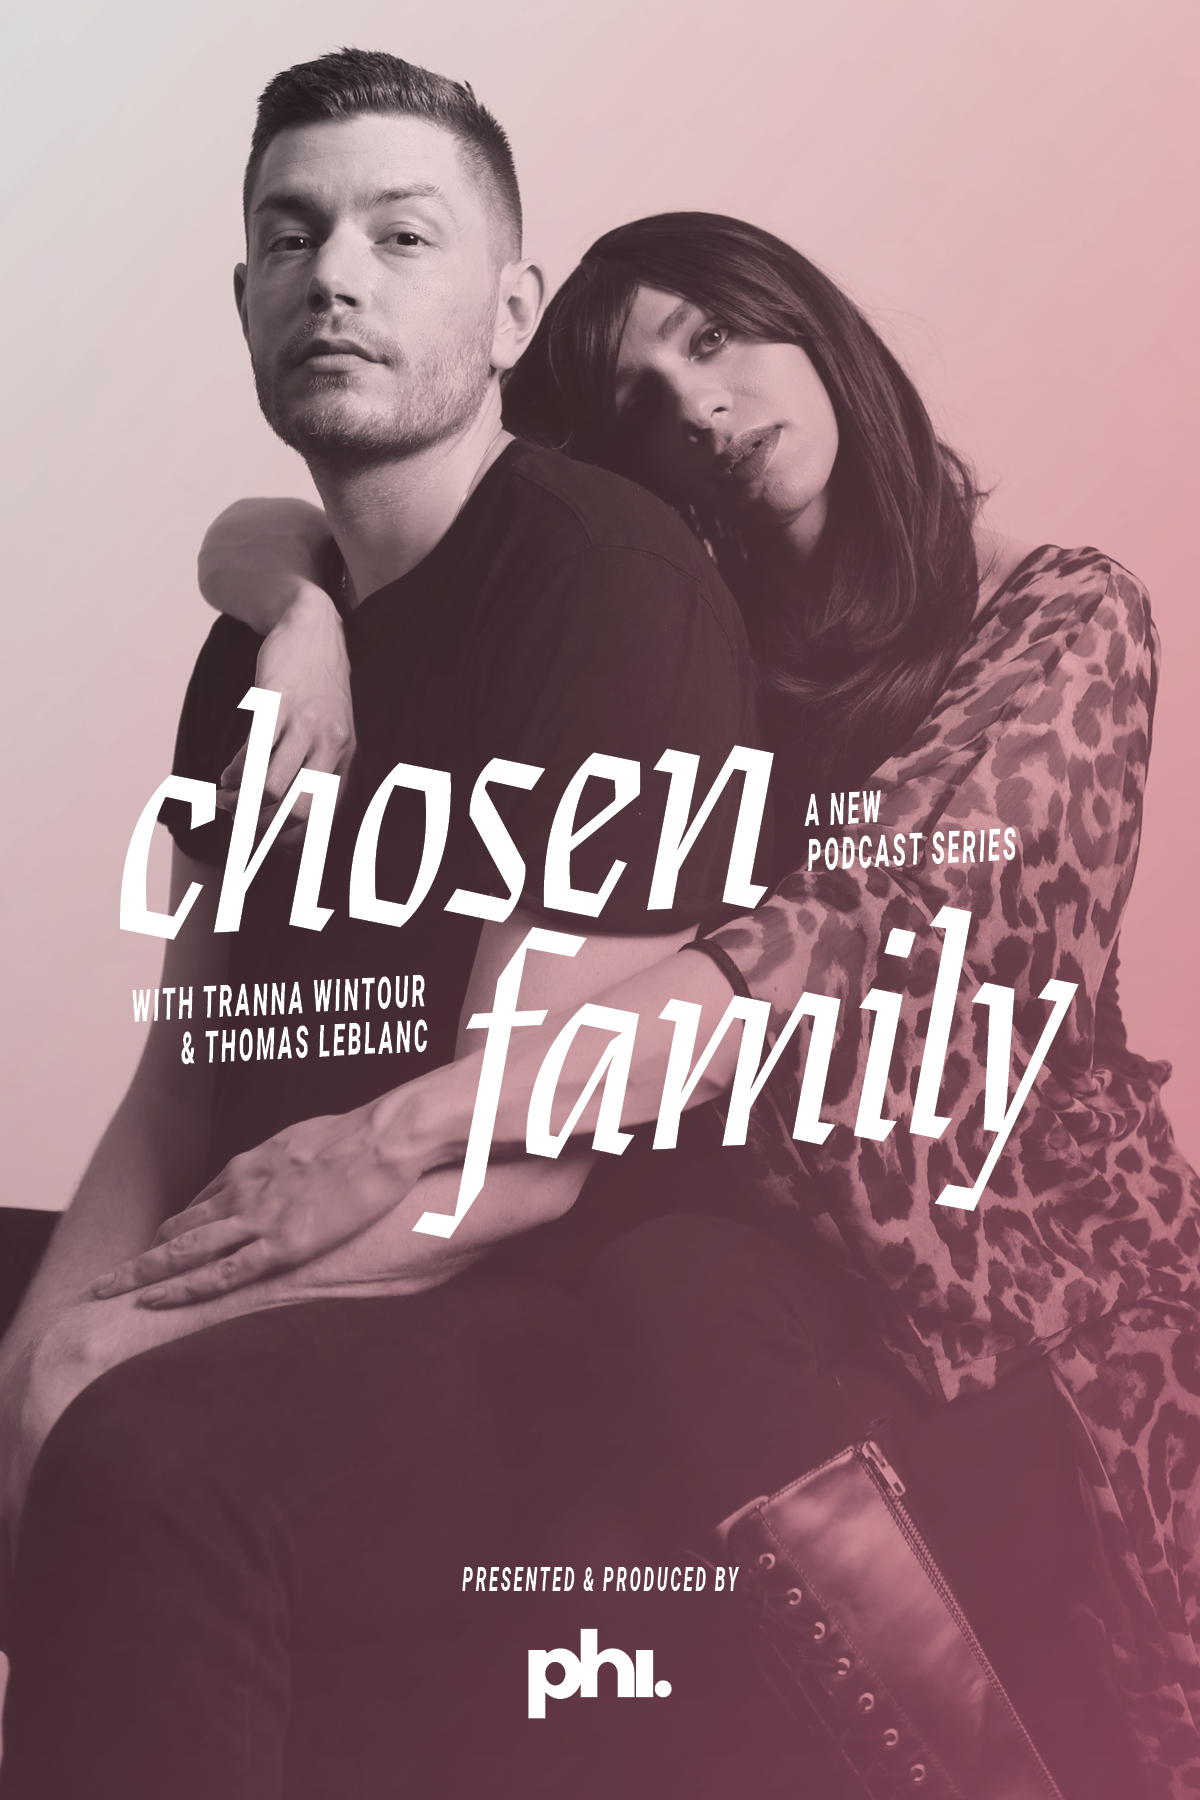 Poster for our podcast, Chosen Familly!  (Photo by Jimmy Francoeur, Design by Jimmy Pelchat)